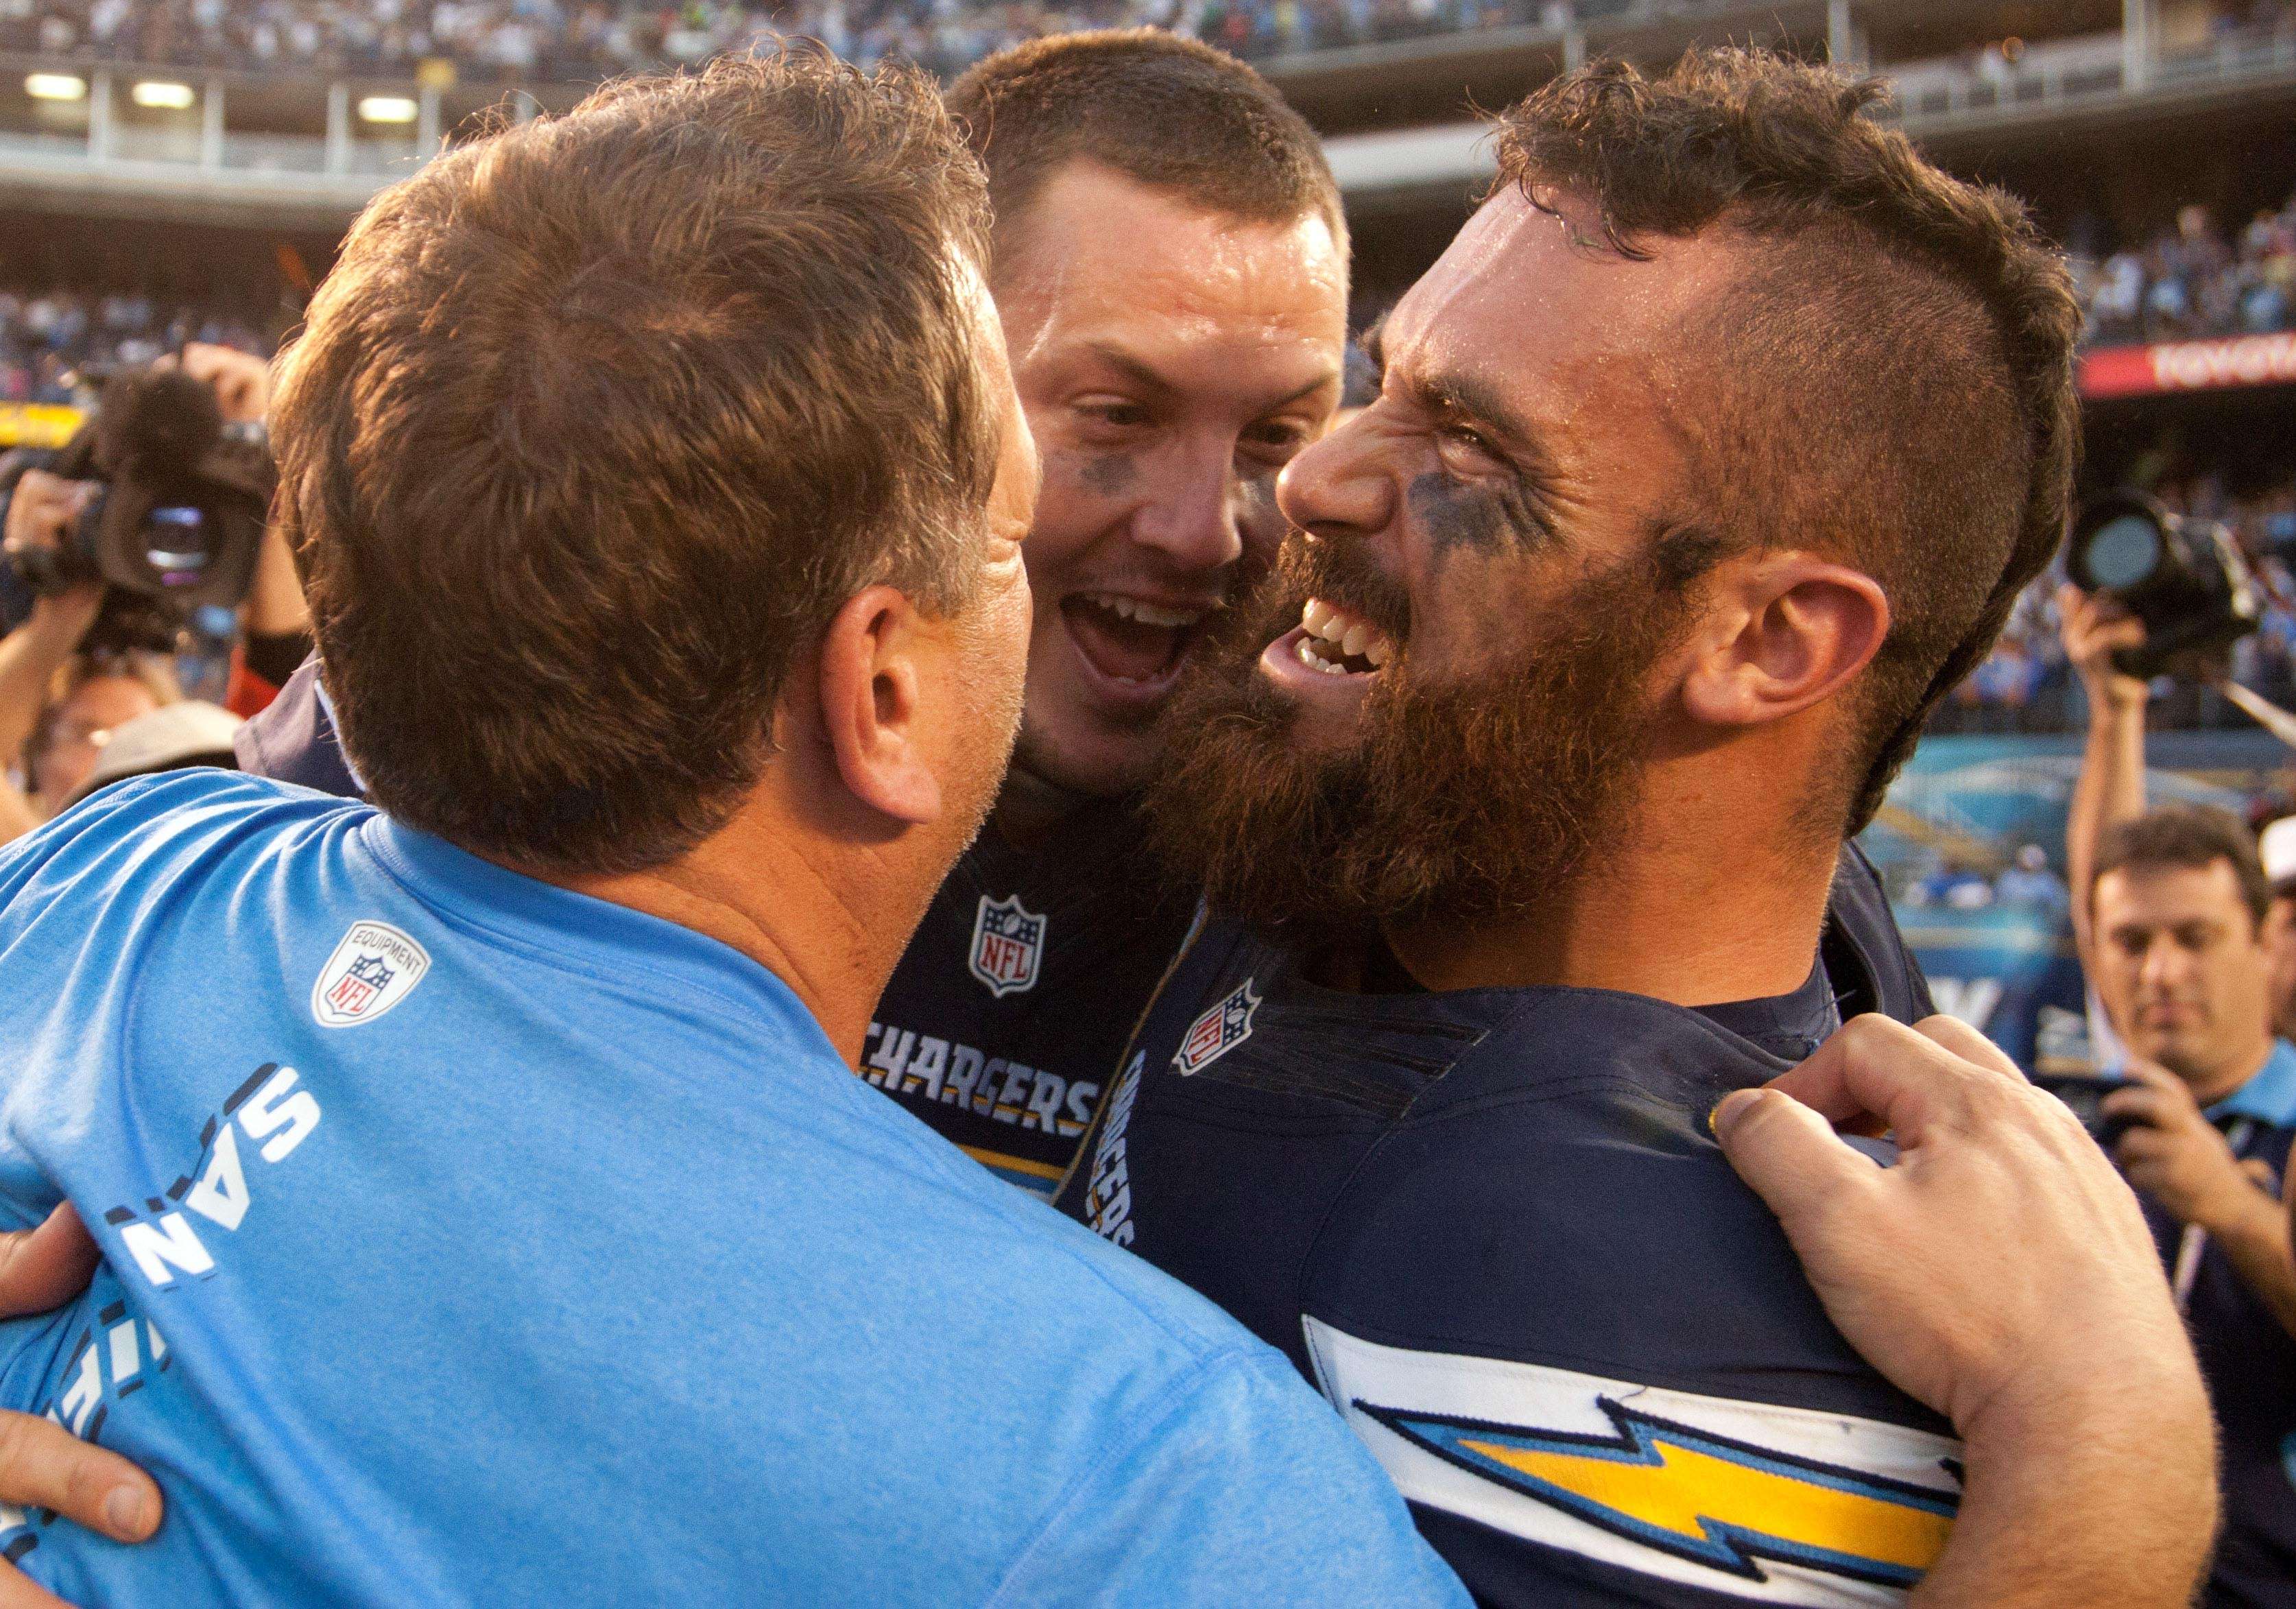 Philip Rivers and Eric Weddle following a 27-24 OT win against the Chiefs on 12/29/13